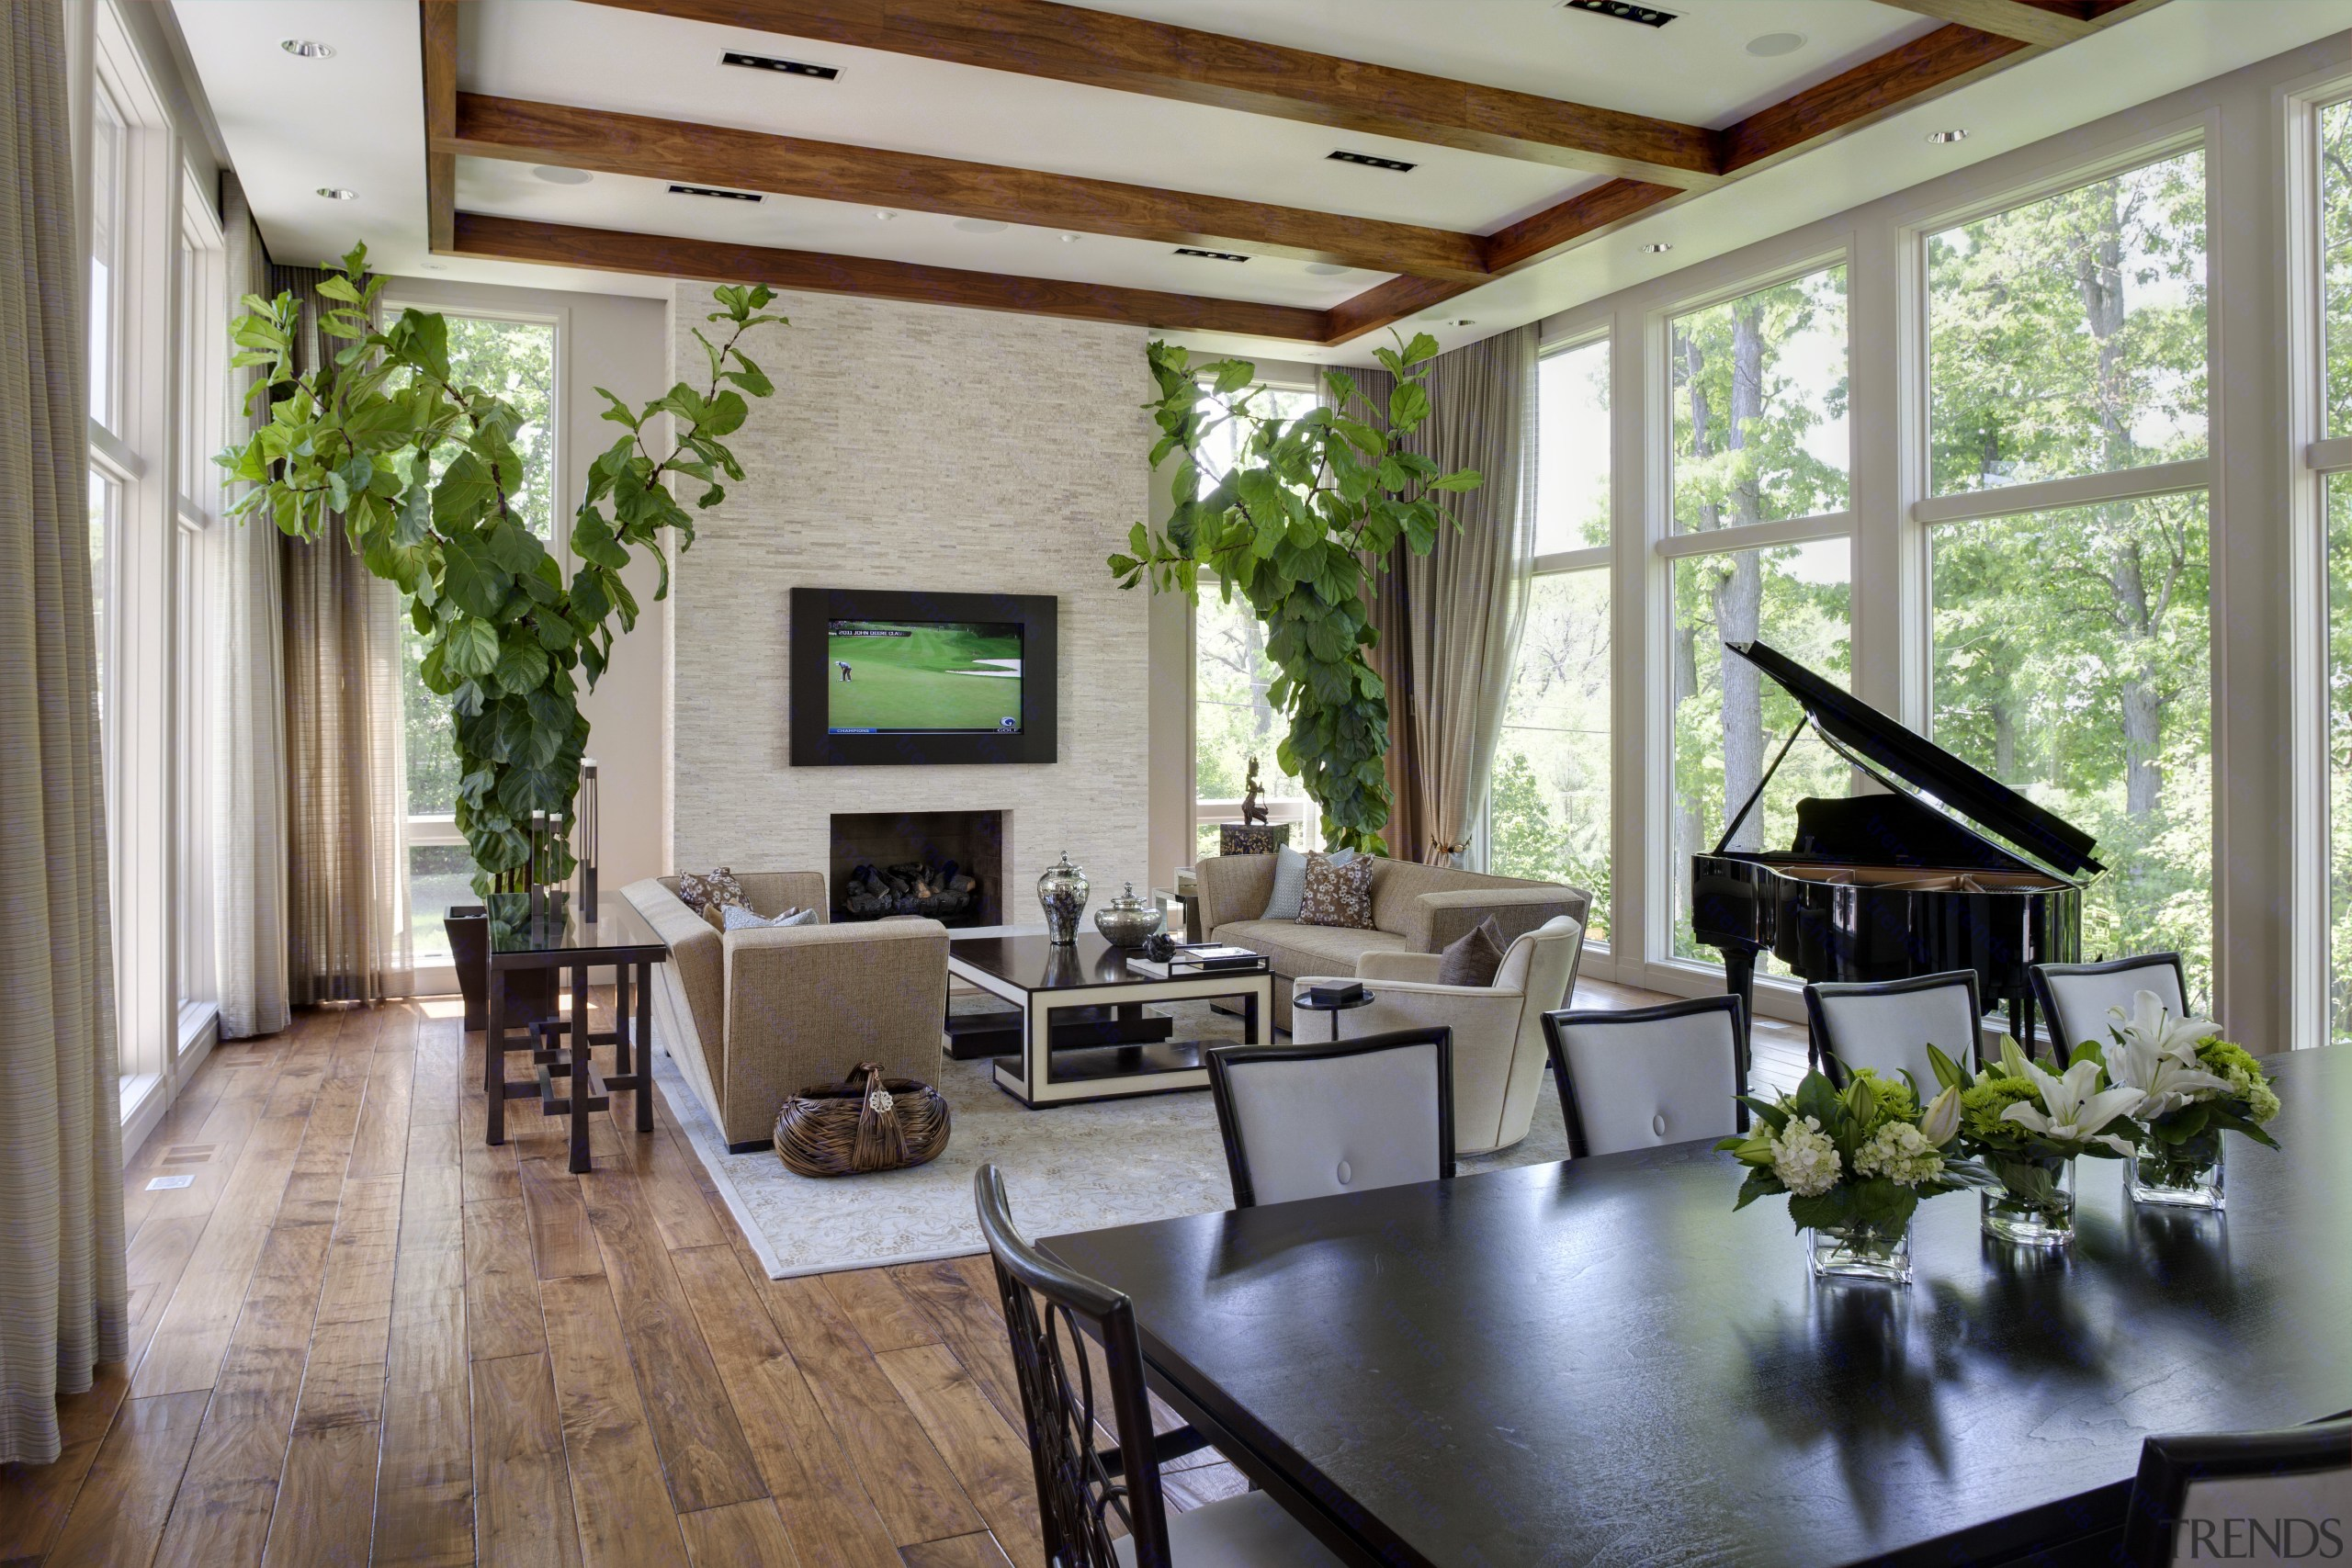 Greys and whites offset wooden floors and ceilings.High architecture, ceiling, home, house, interior design, living room, real estate, window, gray